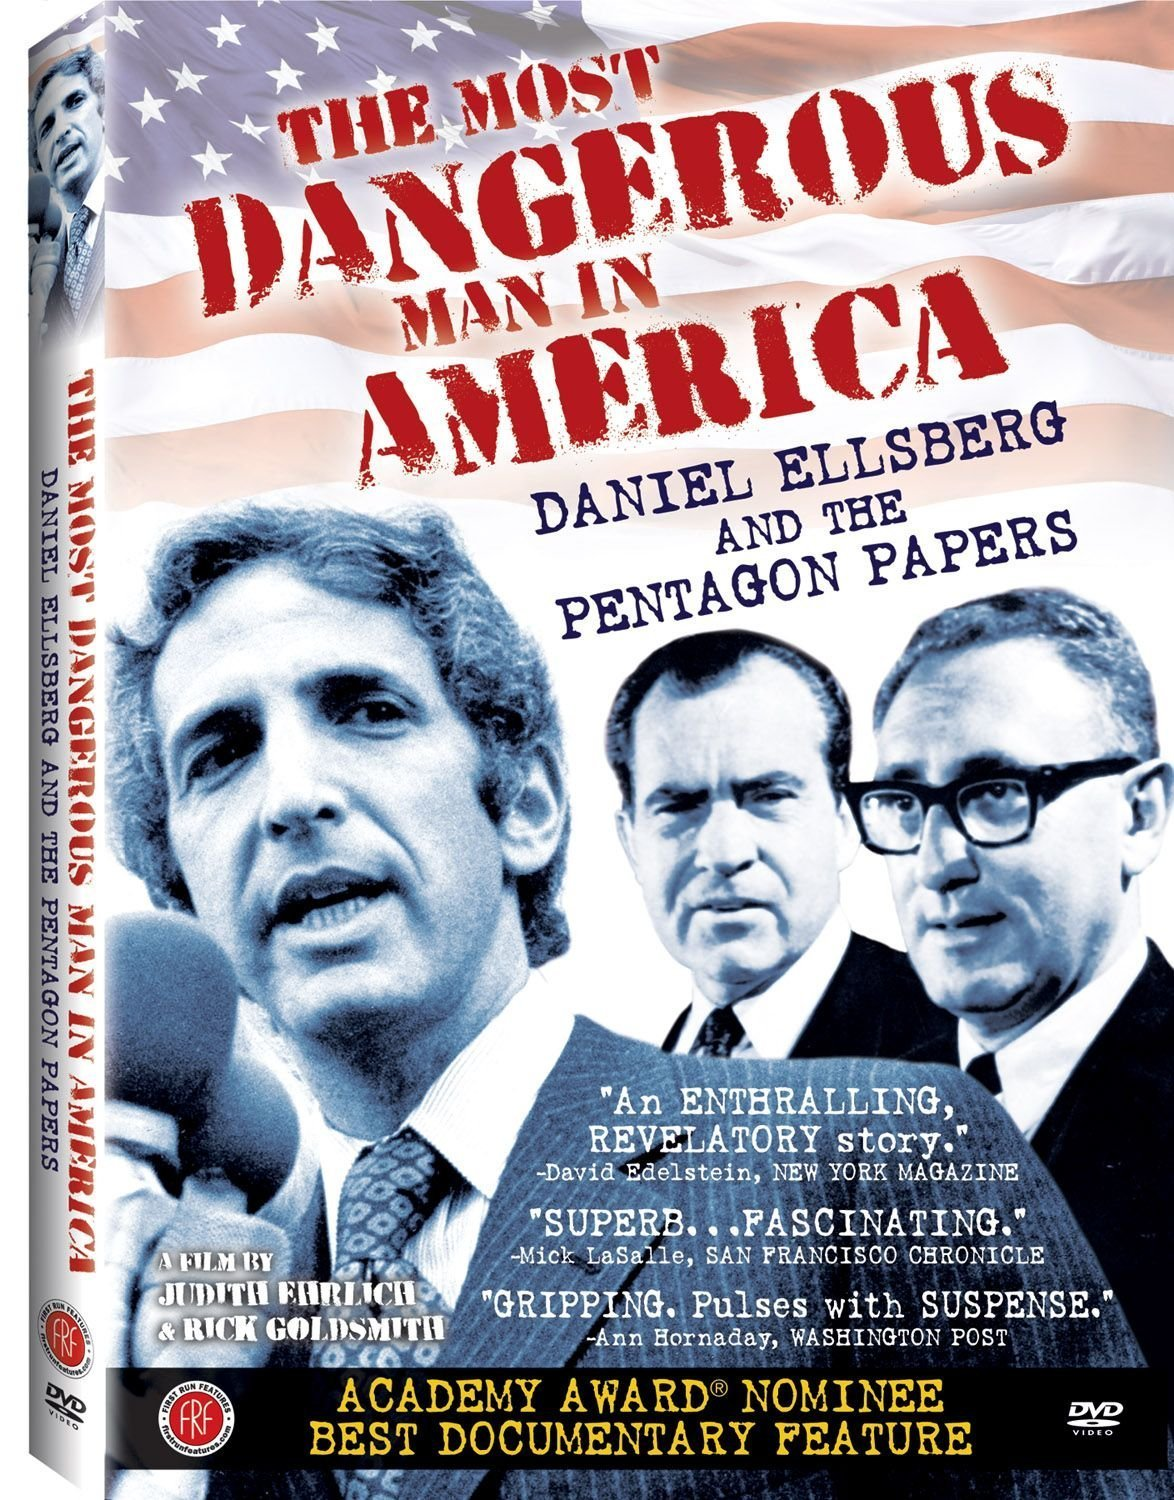 The Most Dangerous Man in America: Daniel Ellsberg and the Pentagon Papers by PBS